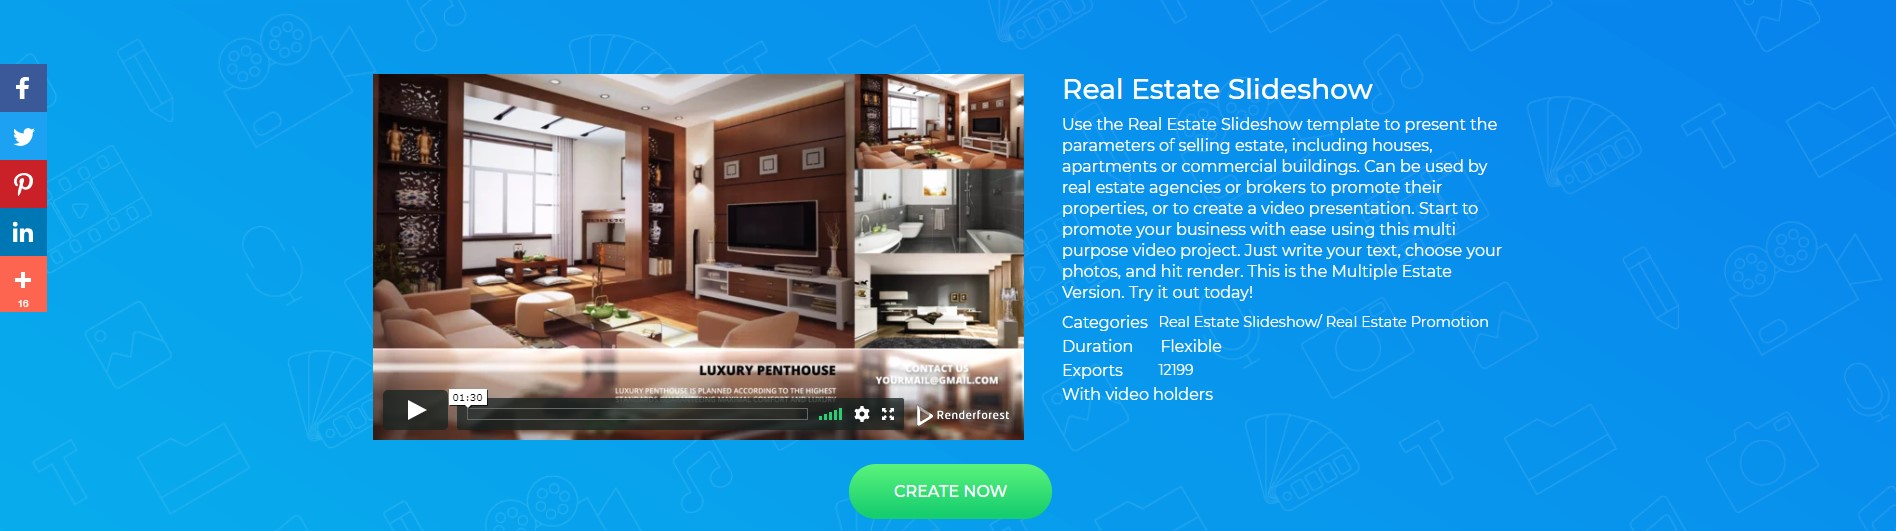 Real Estate Slideshow Template